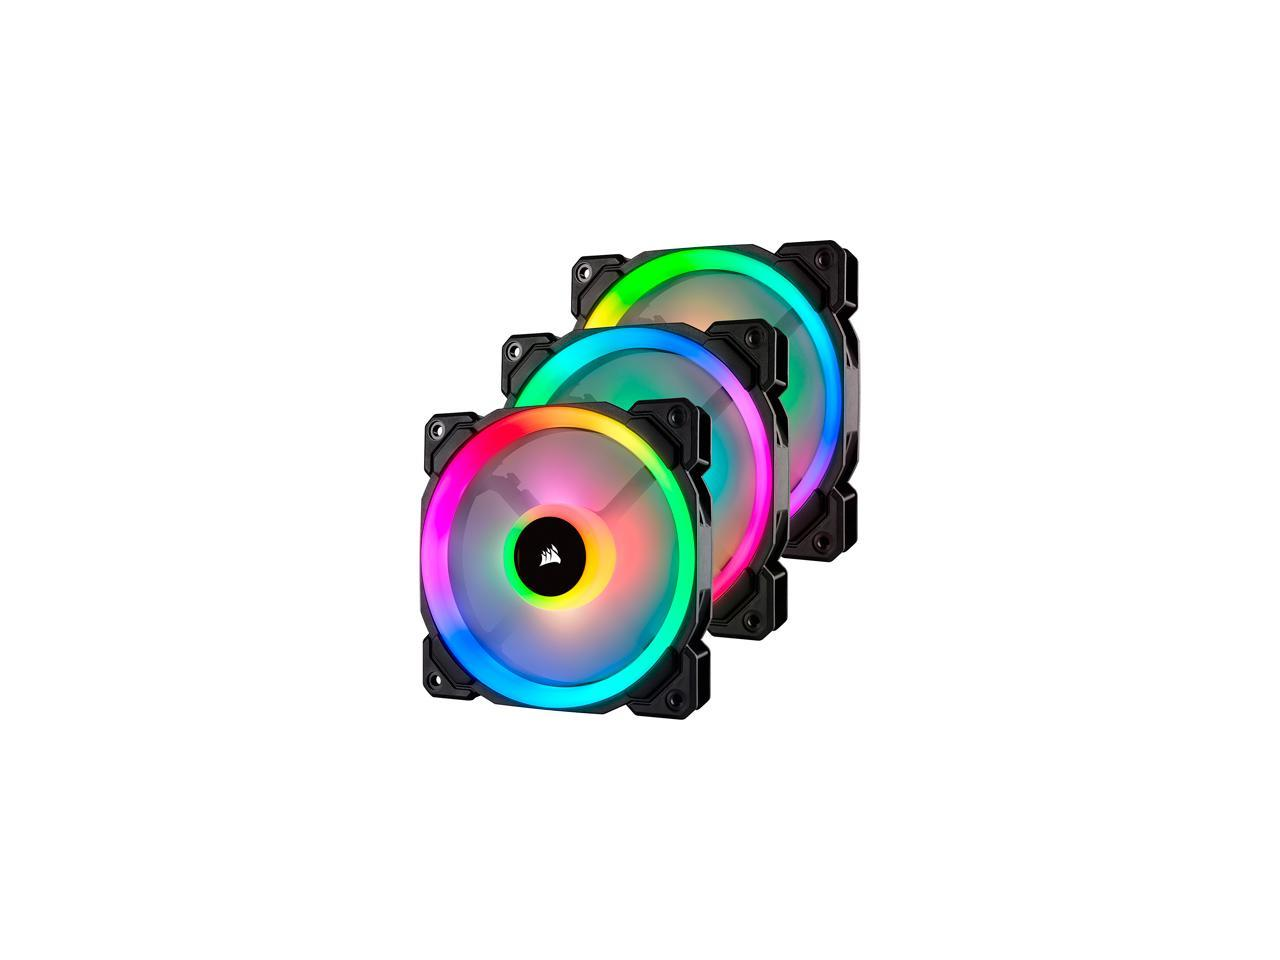 Fan Corsair LL120 RGB Triple Pack + Lighting - CO-9050072-WW